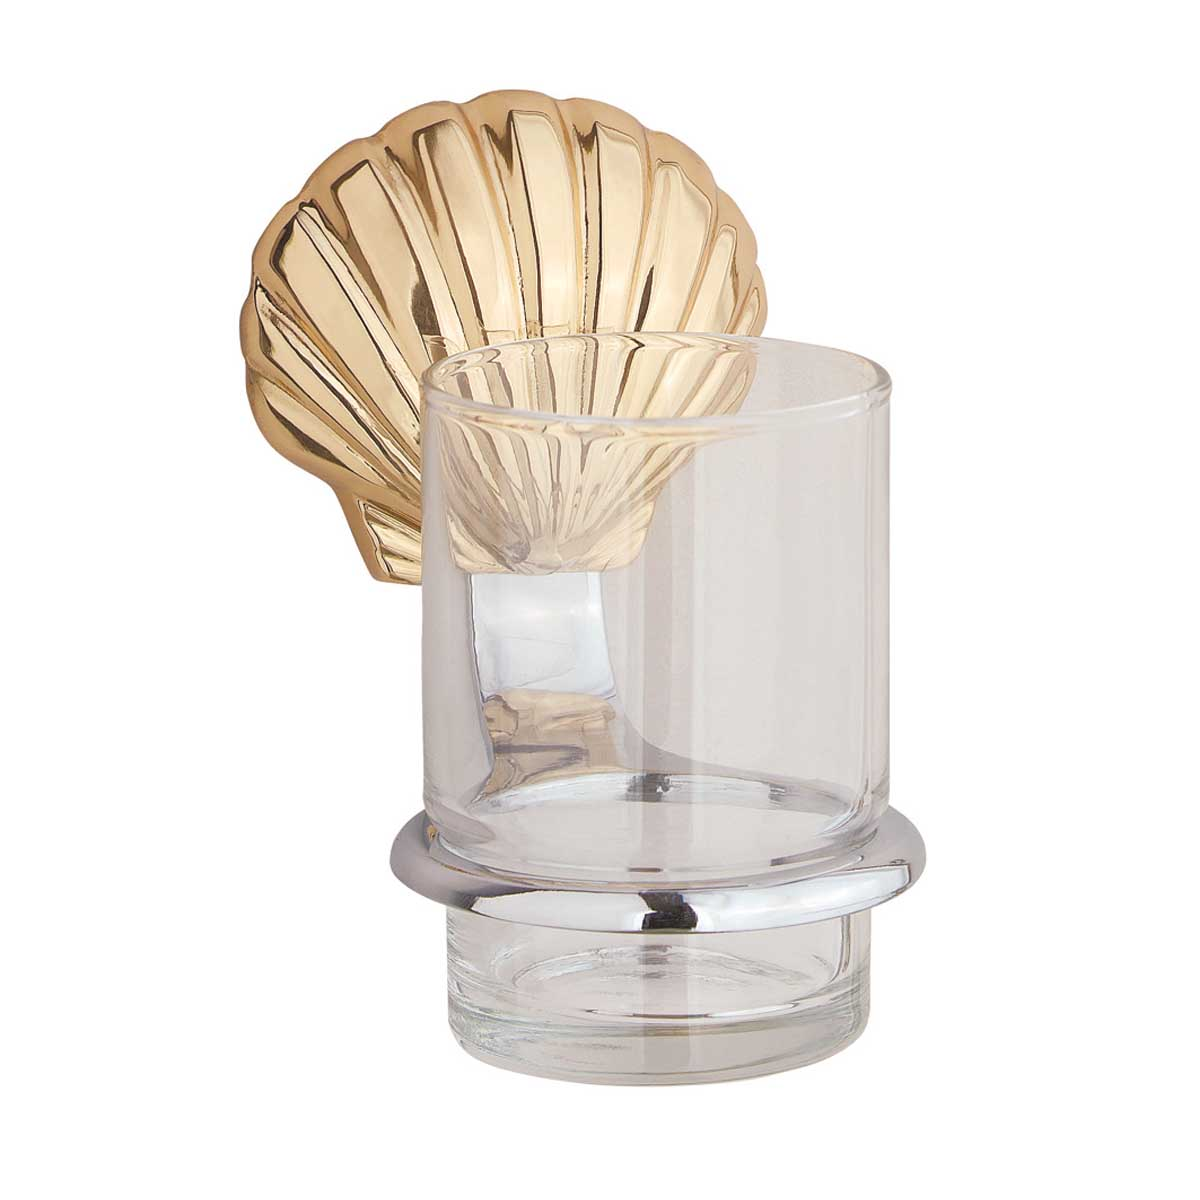 Classic Tumbler Cup Holder Sea Crest Solid Brass Holder | Renovator's Supply